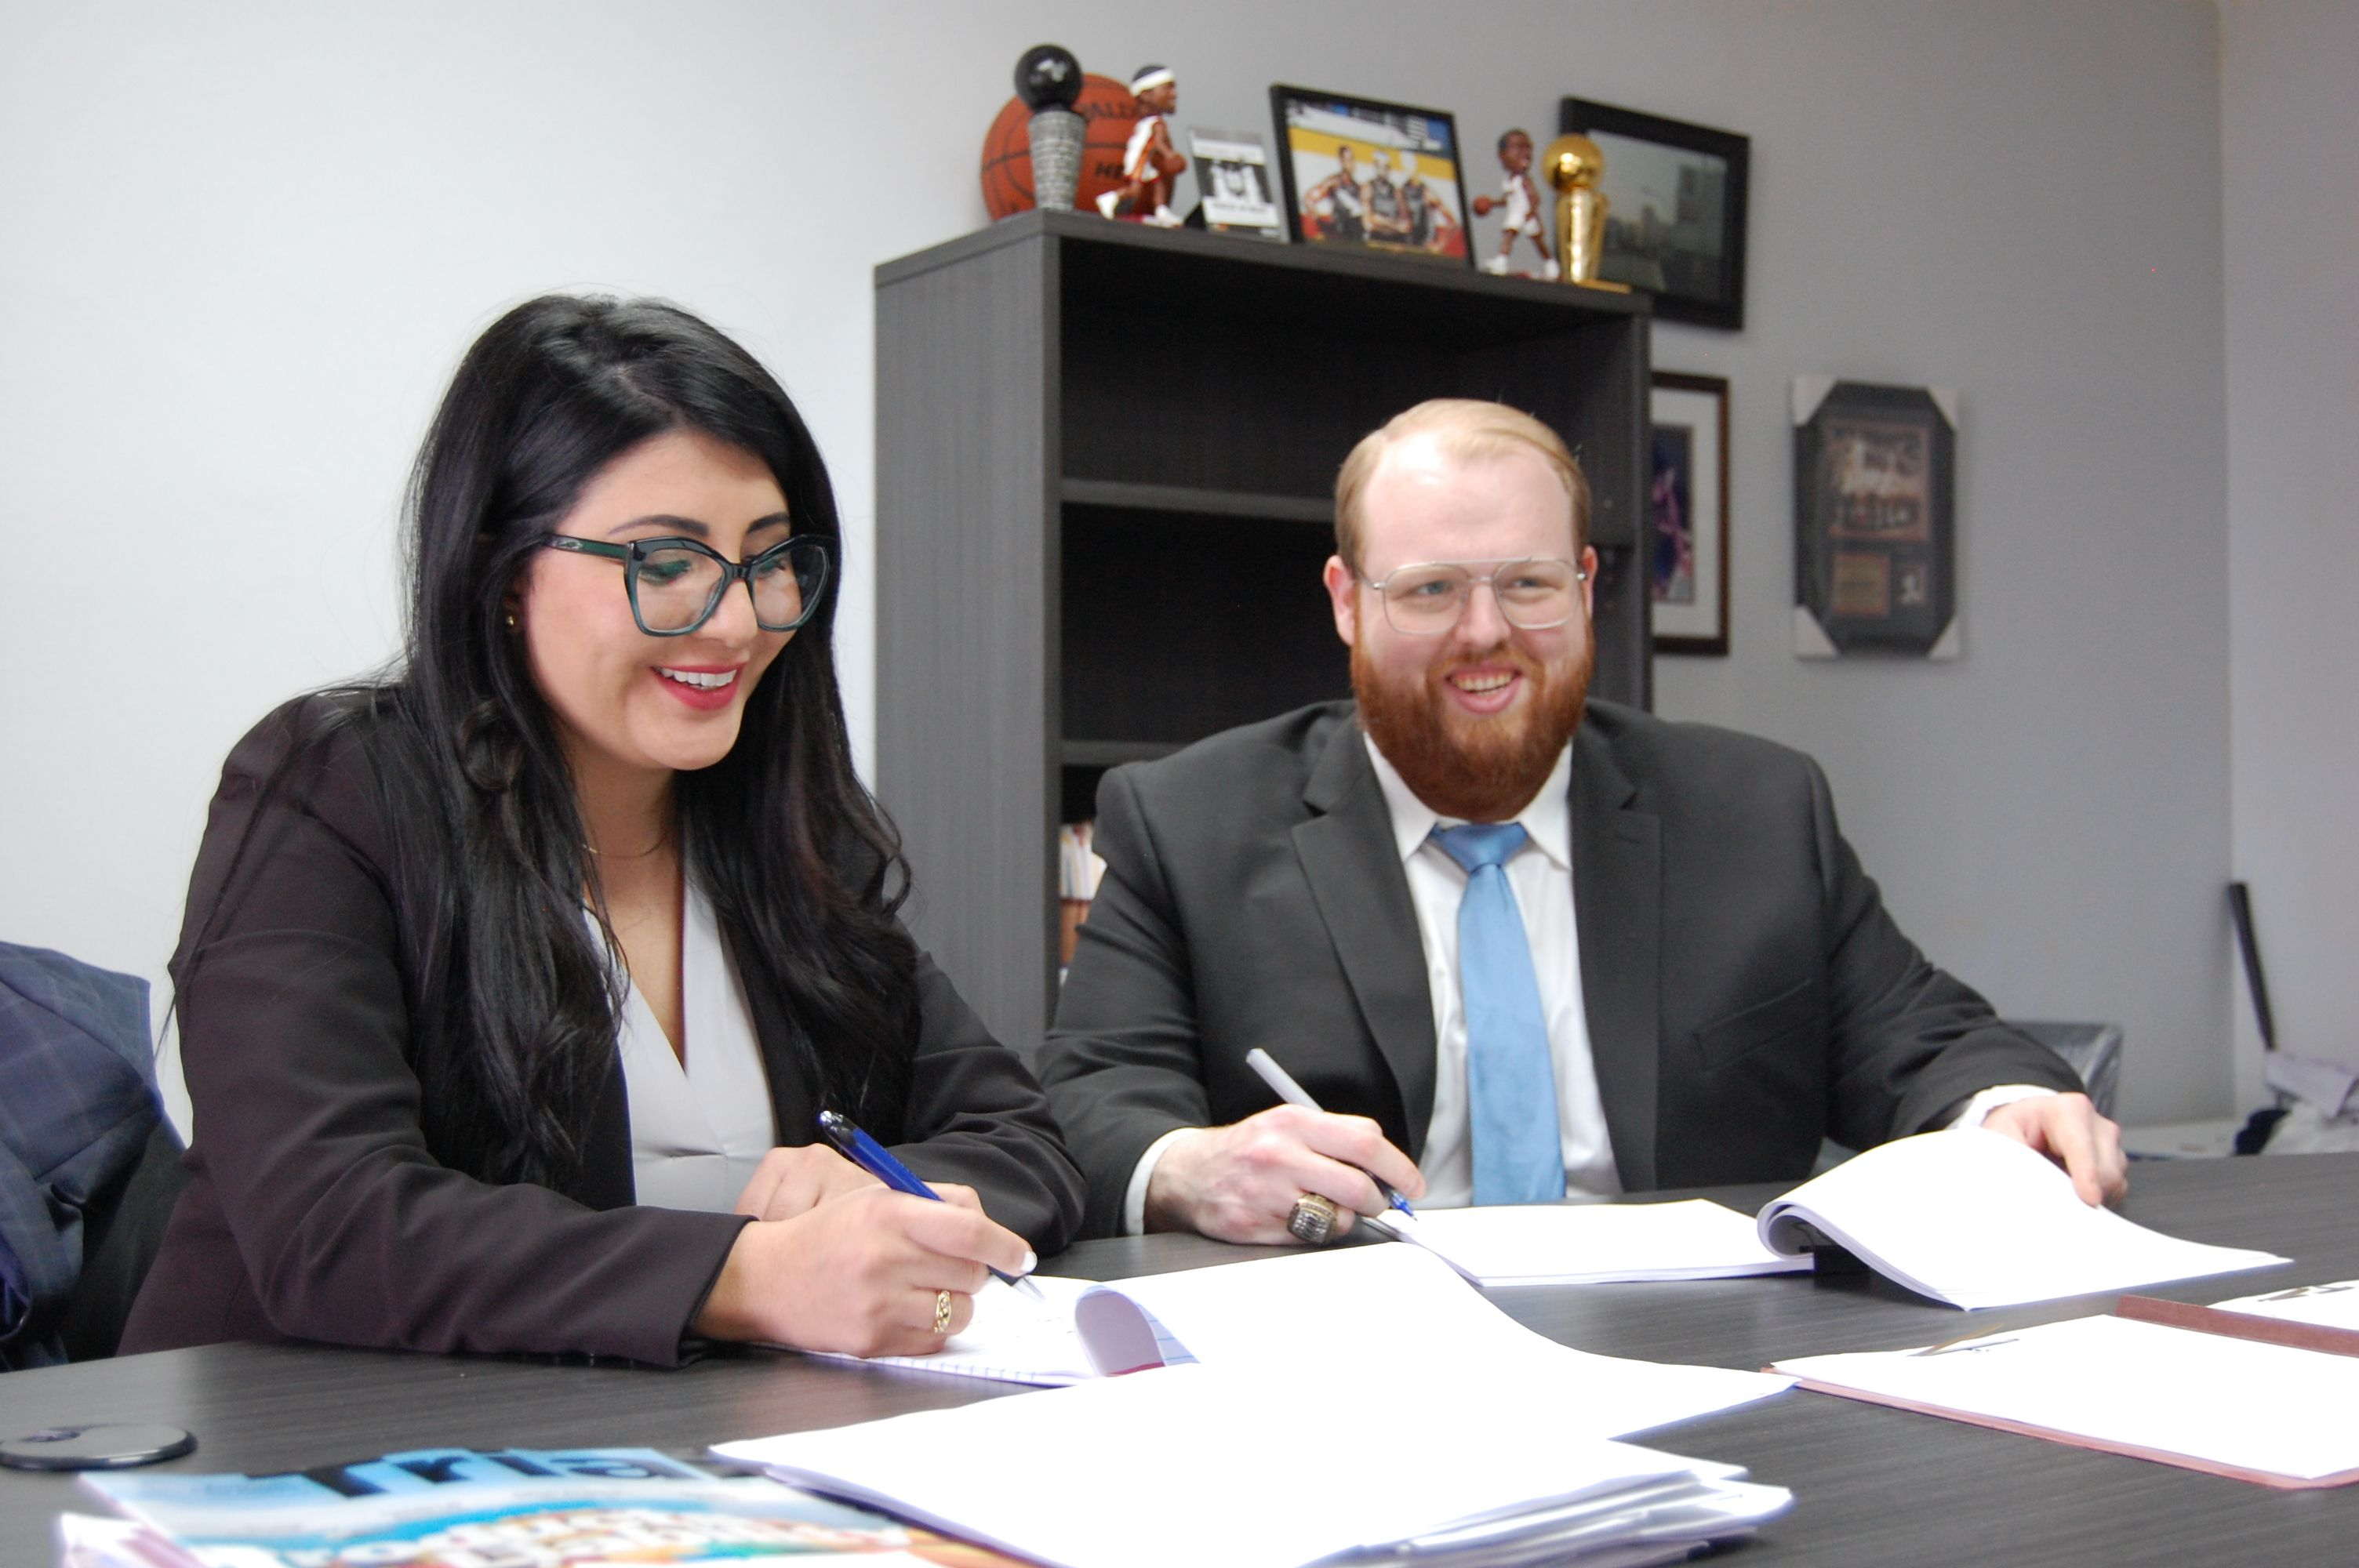 Attorney William Johnson and Attorney Leidy Cuervo Working on a Case